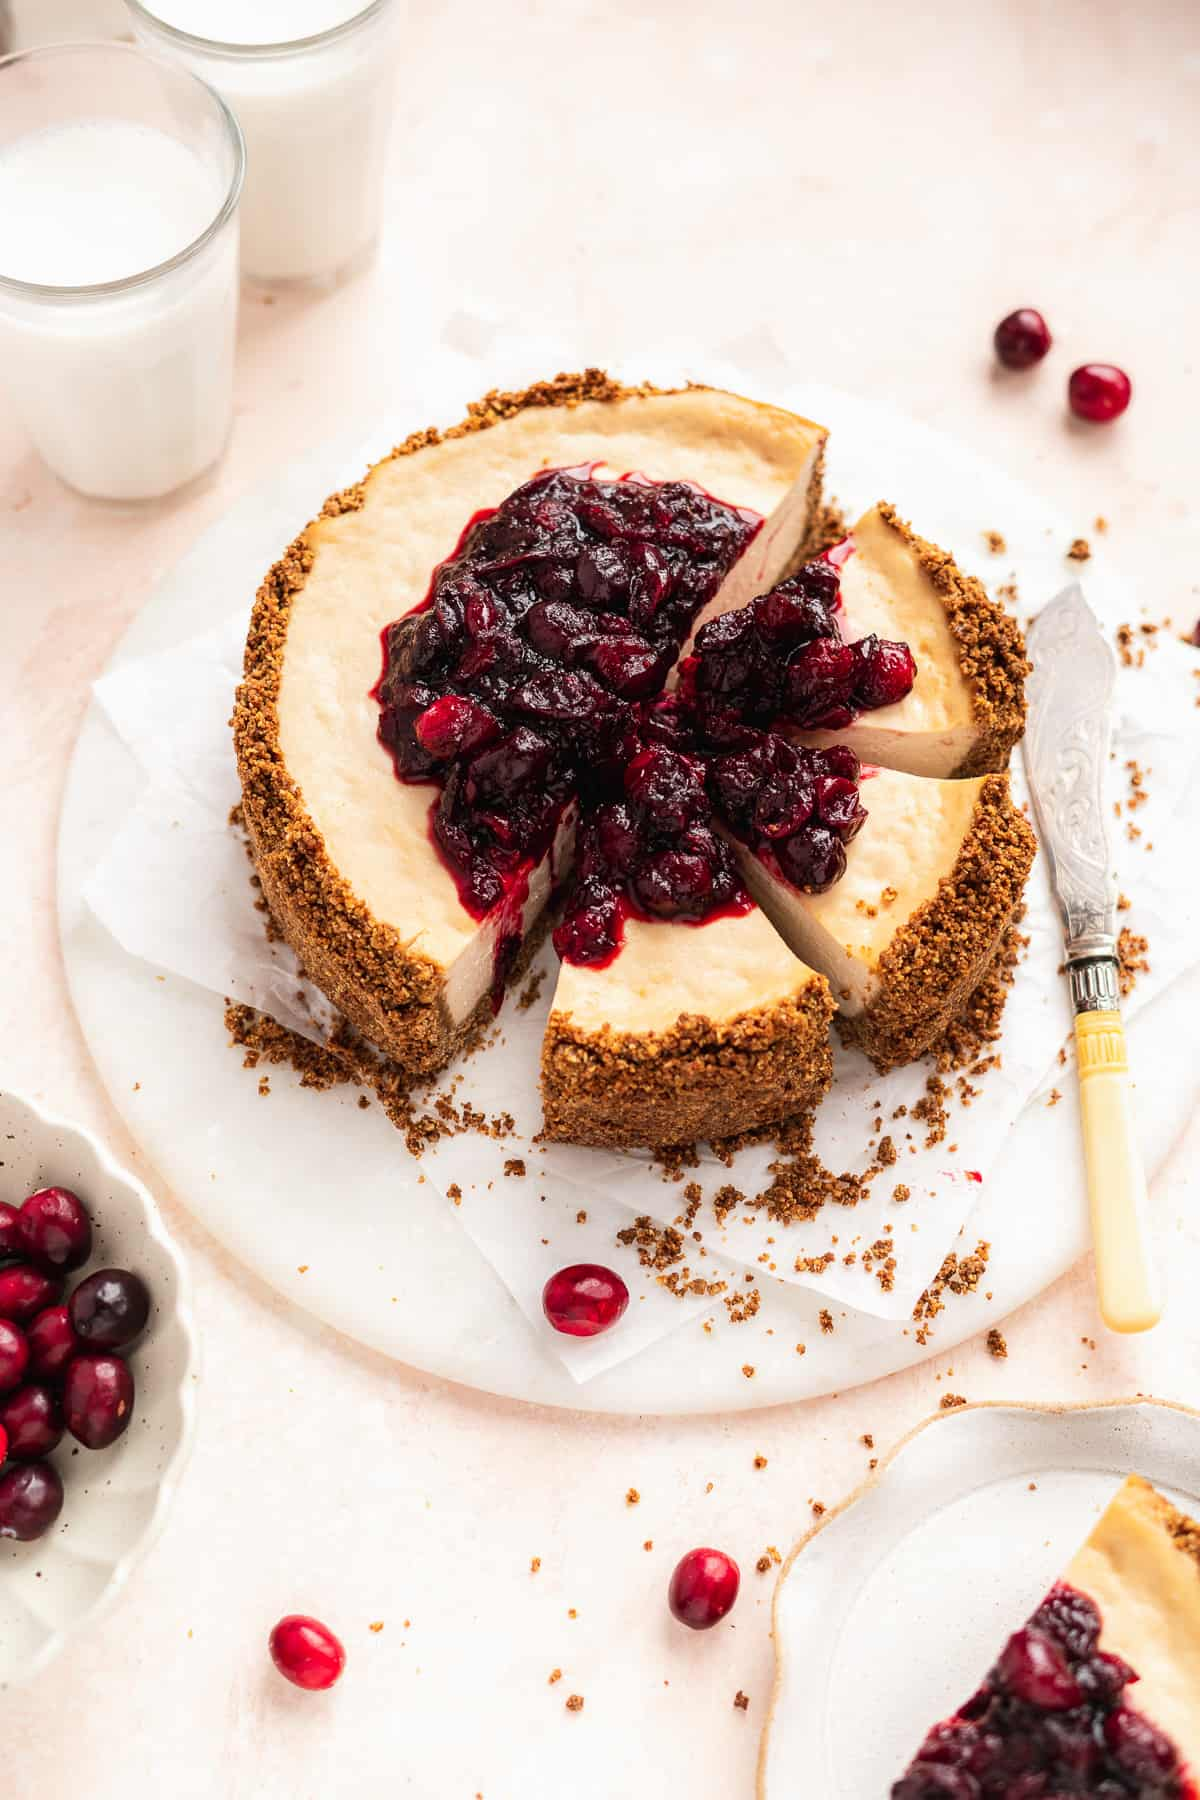 Overhead photo of Vegan Baked Cranberry Cheesecake with Graham Cracker Crust with 3 slices cut sitting on a white marble slab.